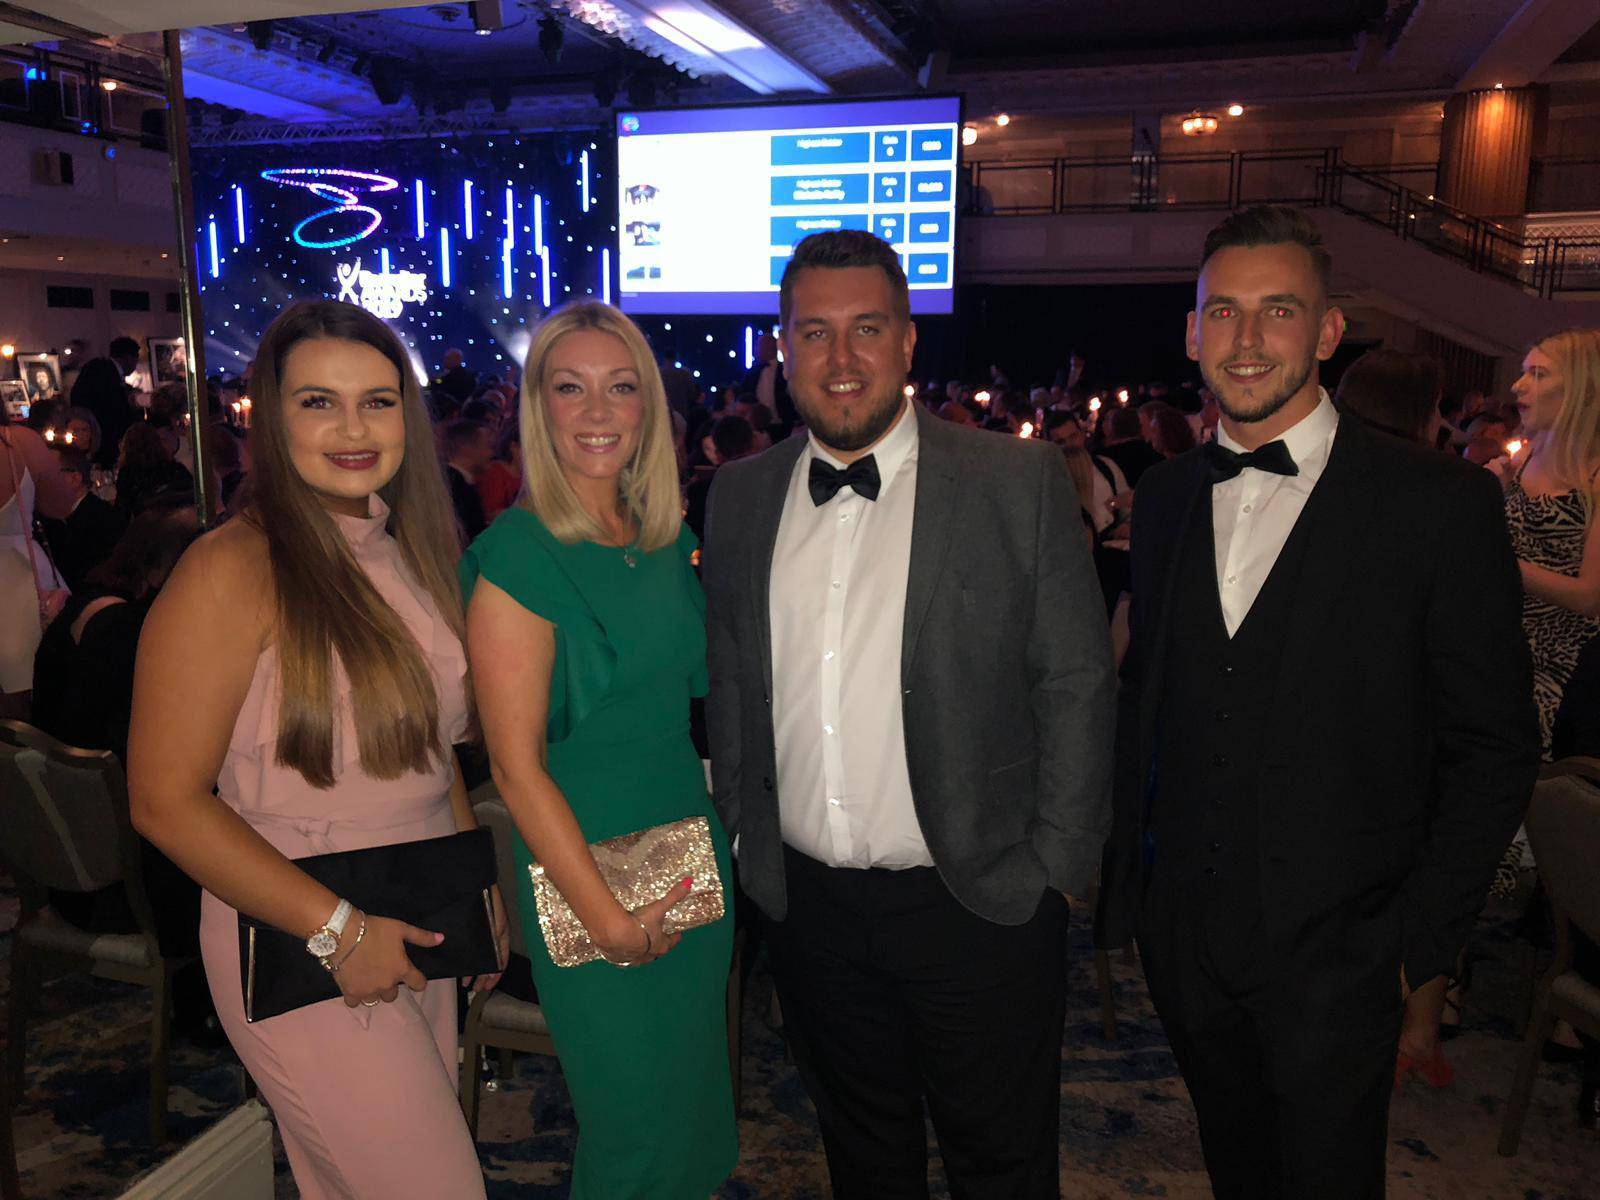 DATS Recruitment Team at Recruiter Awards in London